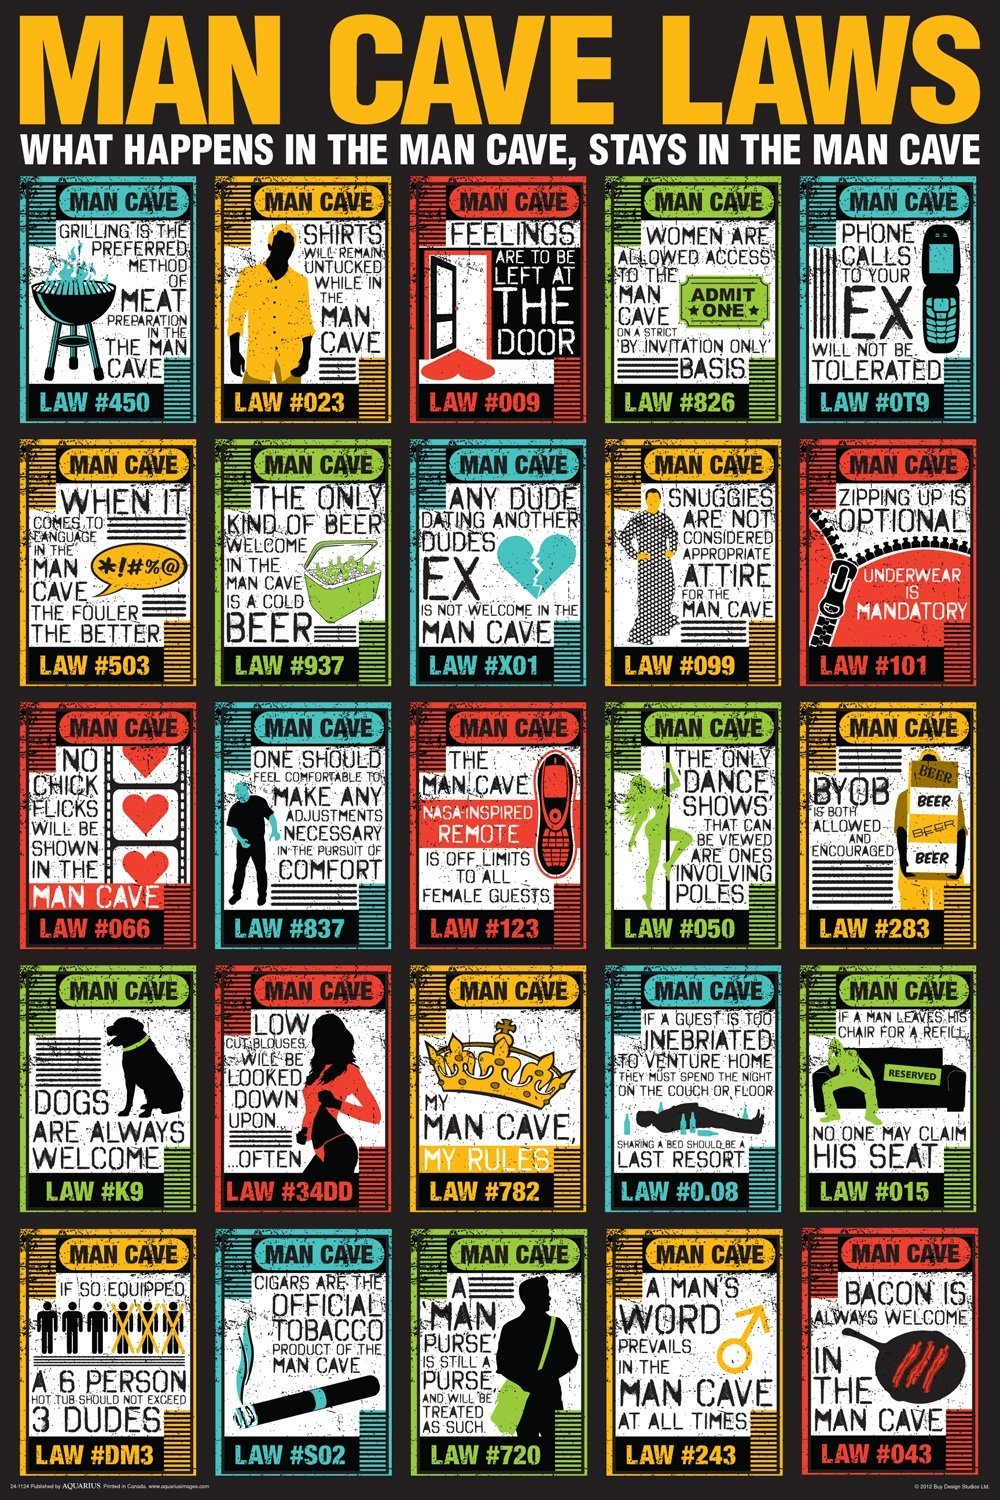 Man Cave Items To Buy : Man cave laws poster gift search